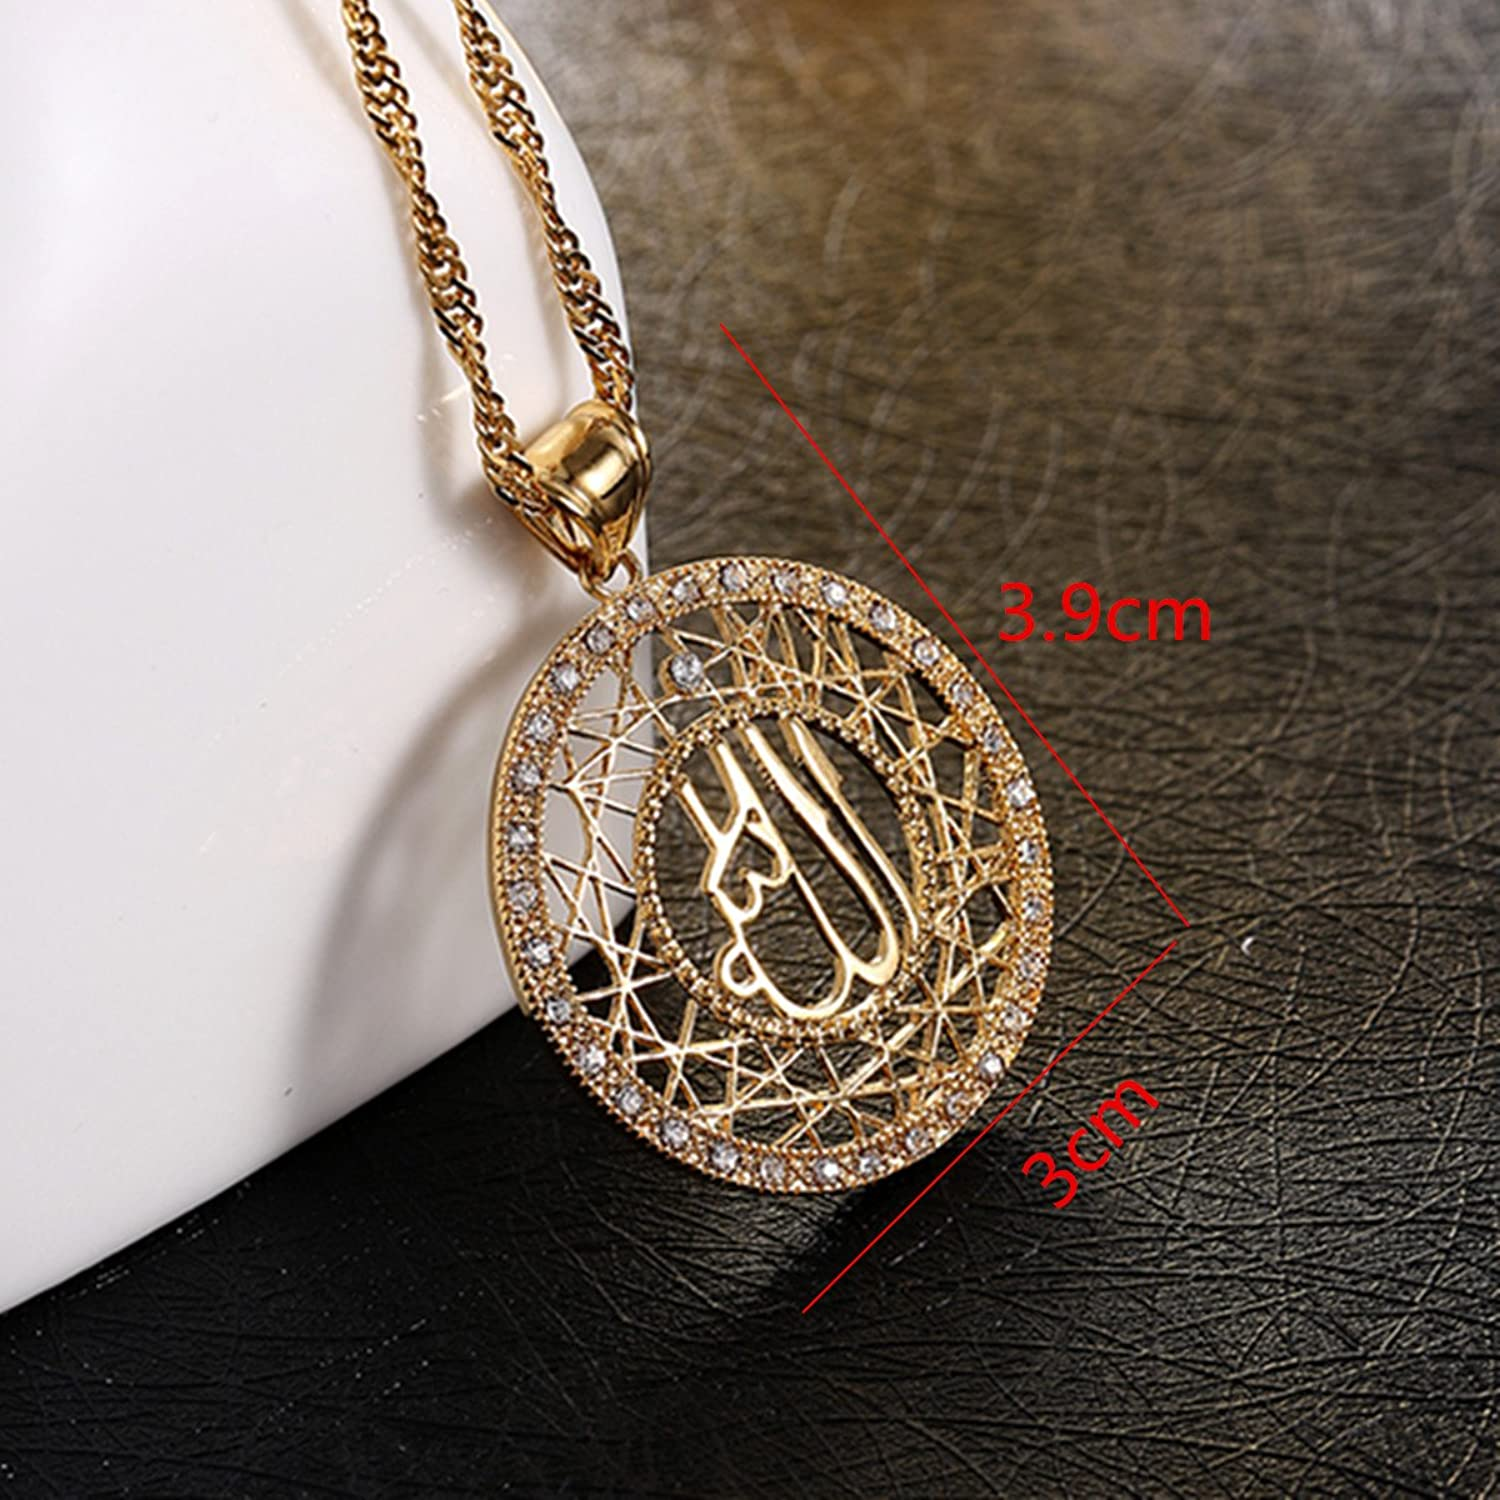 Amazon 24k gold muslims allah pendant necklace charm arabic amazon 24k gold muslims allah pendant necklace charm arabic islamic rhinestone jewelry jewelry mozeypictures Choice Image